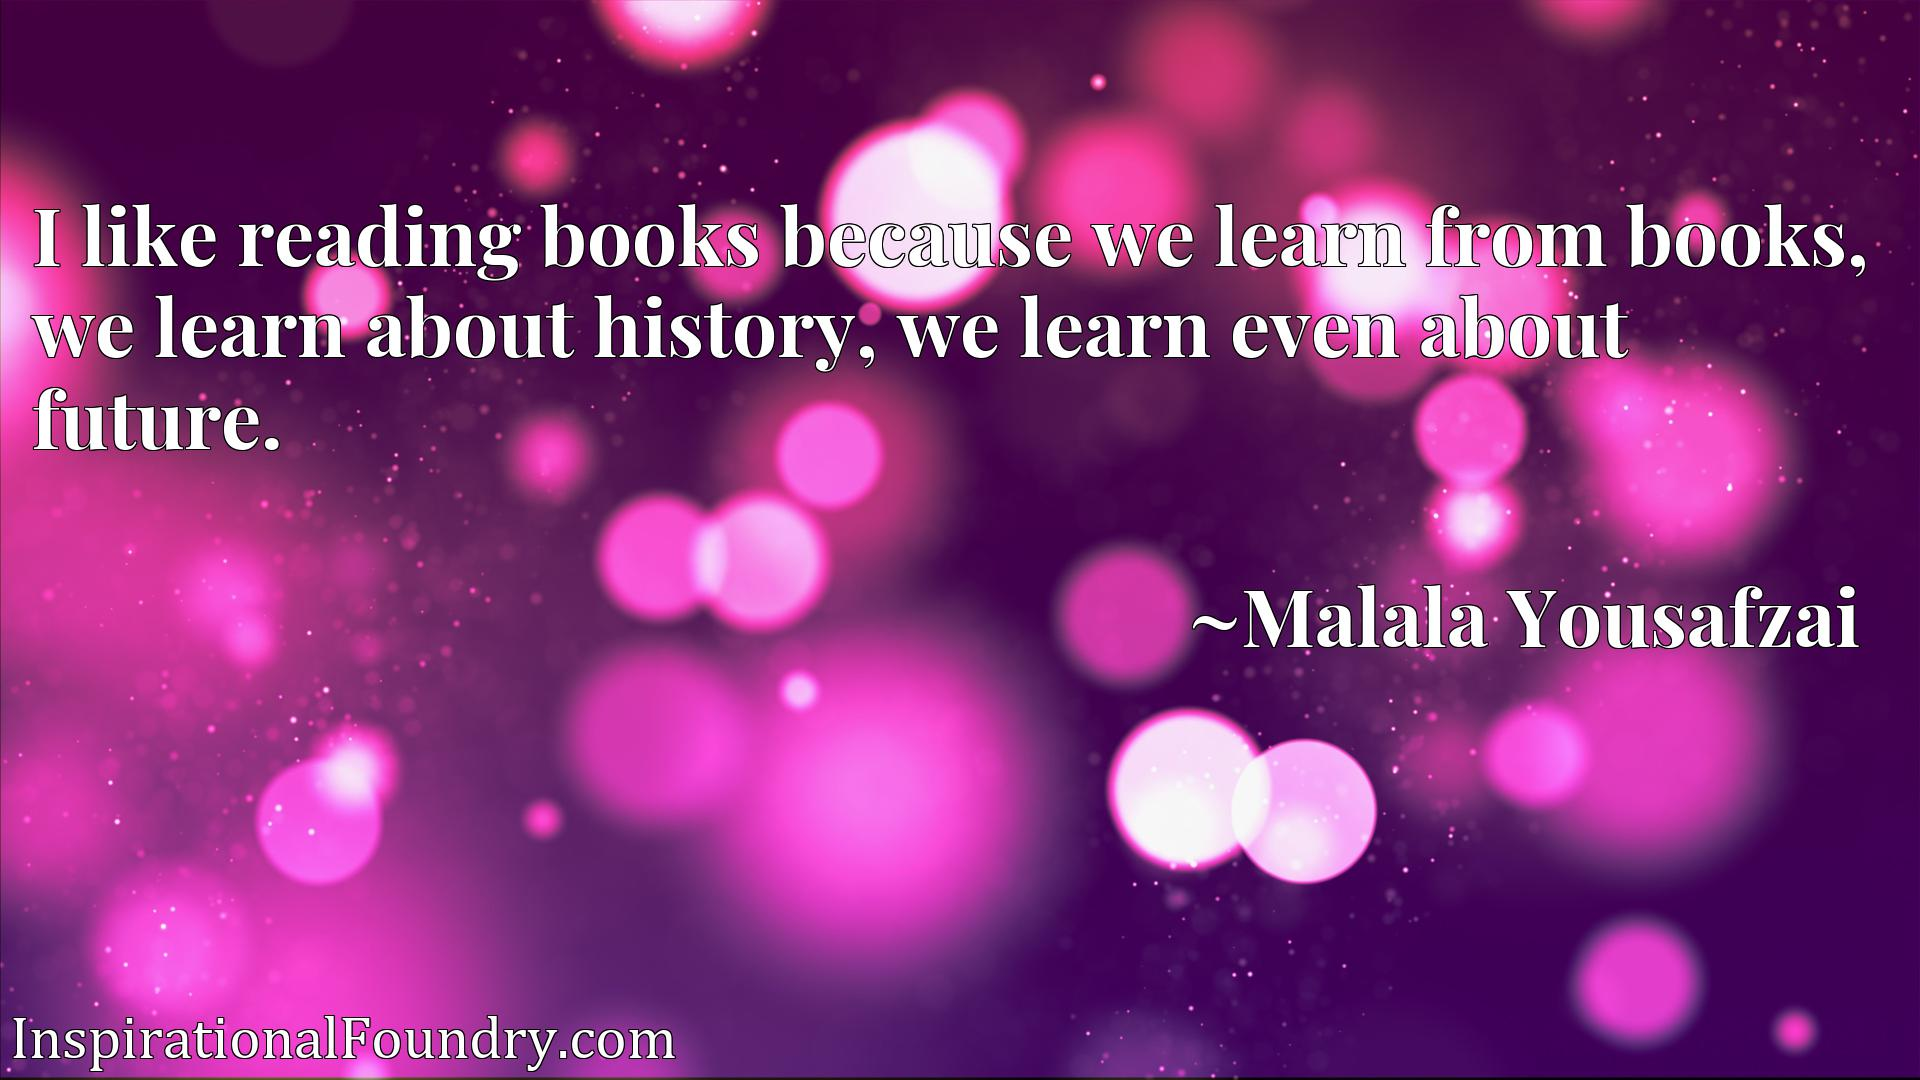 I like reading books because we learn from books, we learn about history, we learn even about future.